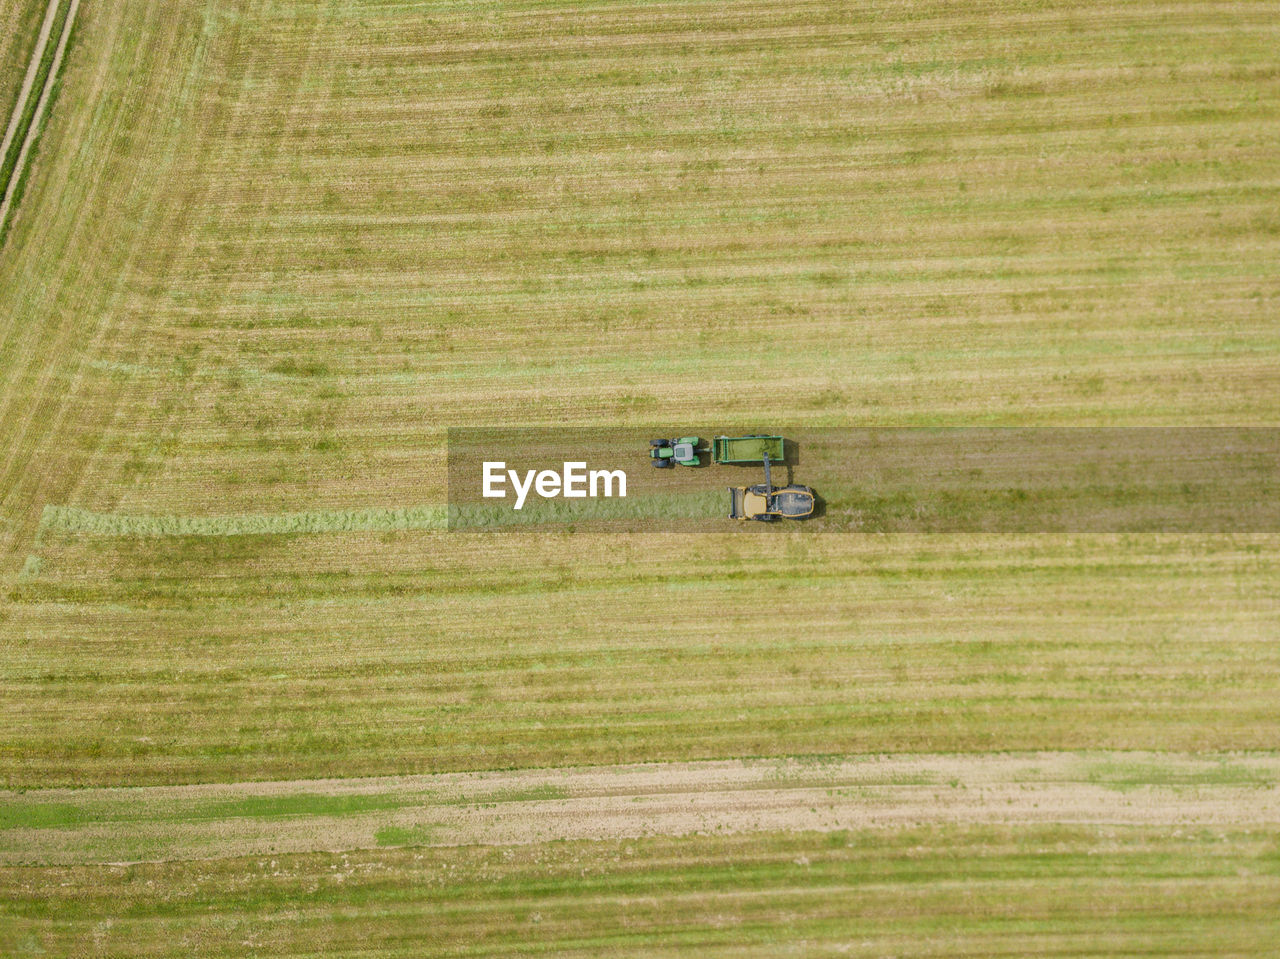 field, land, landscape, environment, land vehicle, green color, day, mode of transportation, transportation, plant, rural scene, nature, no people, farm, agricultural machinery, agriculture, agricultural equipment, tractor, grass, growth, outdoors